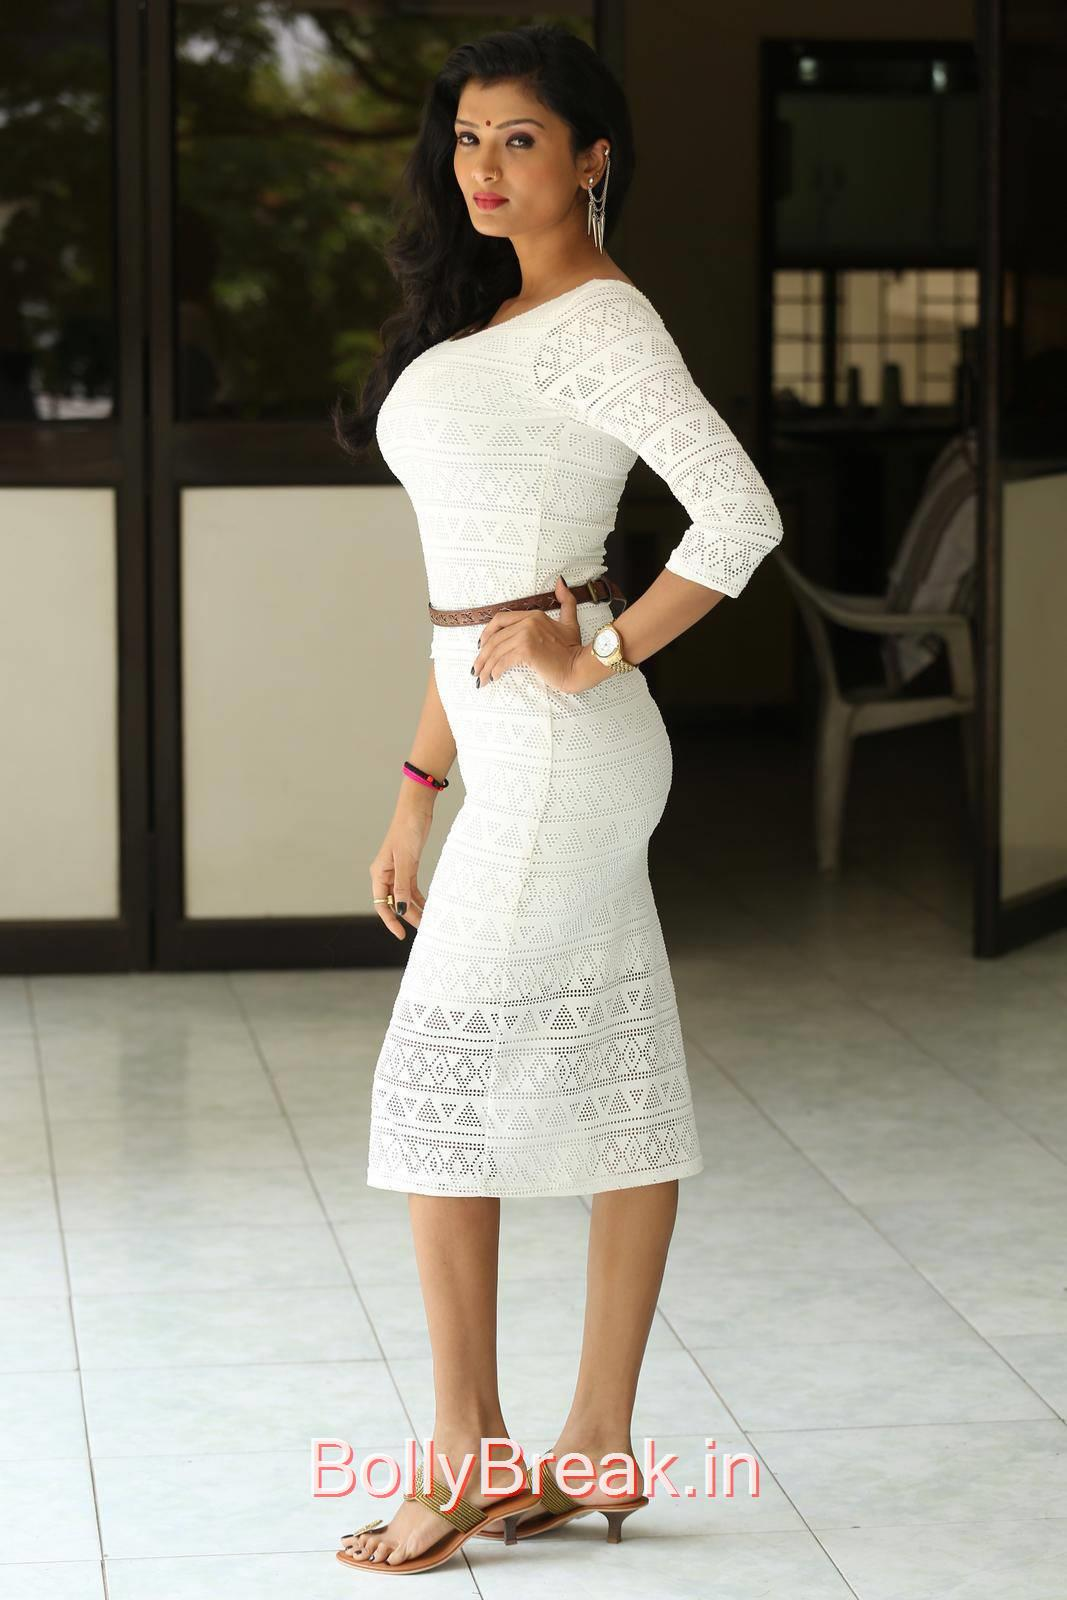 High Quality Ishita Pics, Actress Ishita Standing Full Size HD Hot Pics in White Dress